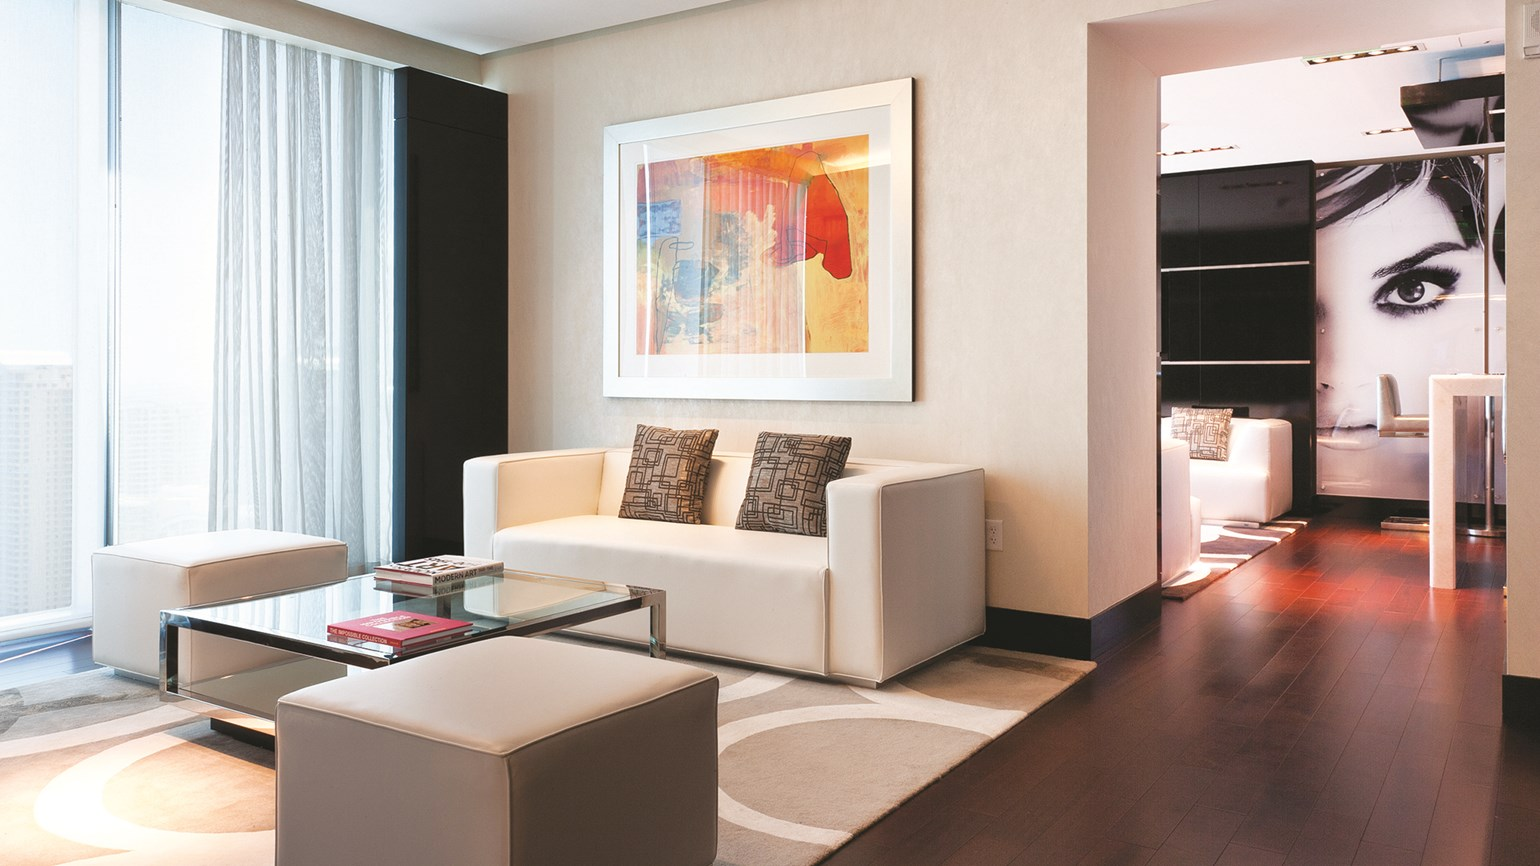 Miami's Hotel Beaux Arts joins Autograph Collection